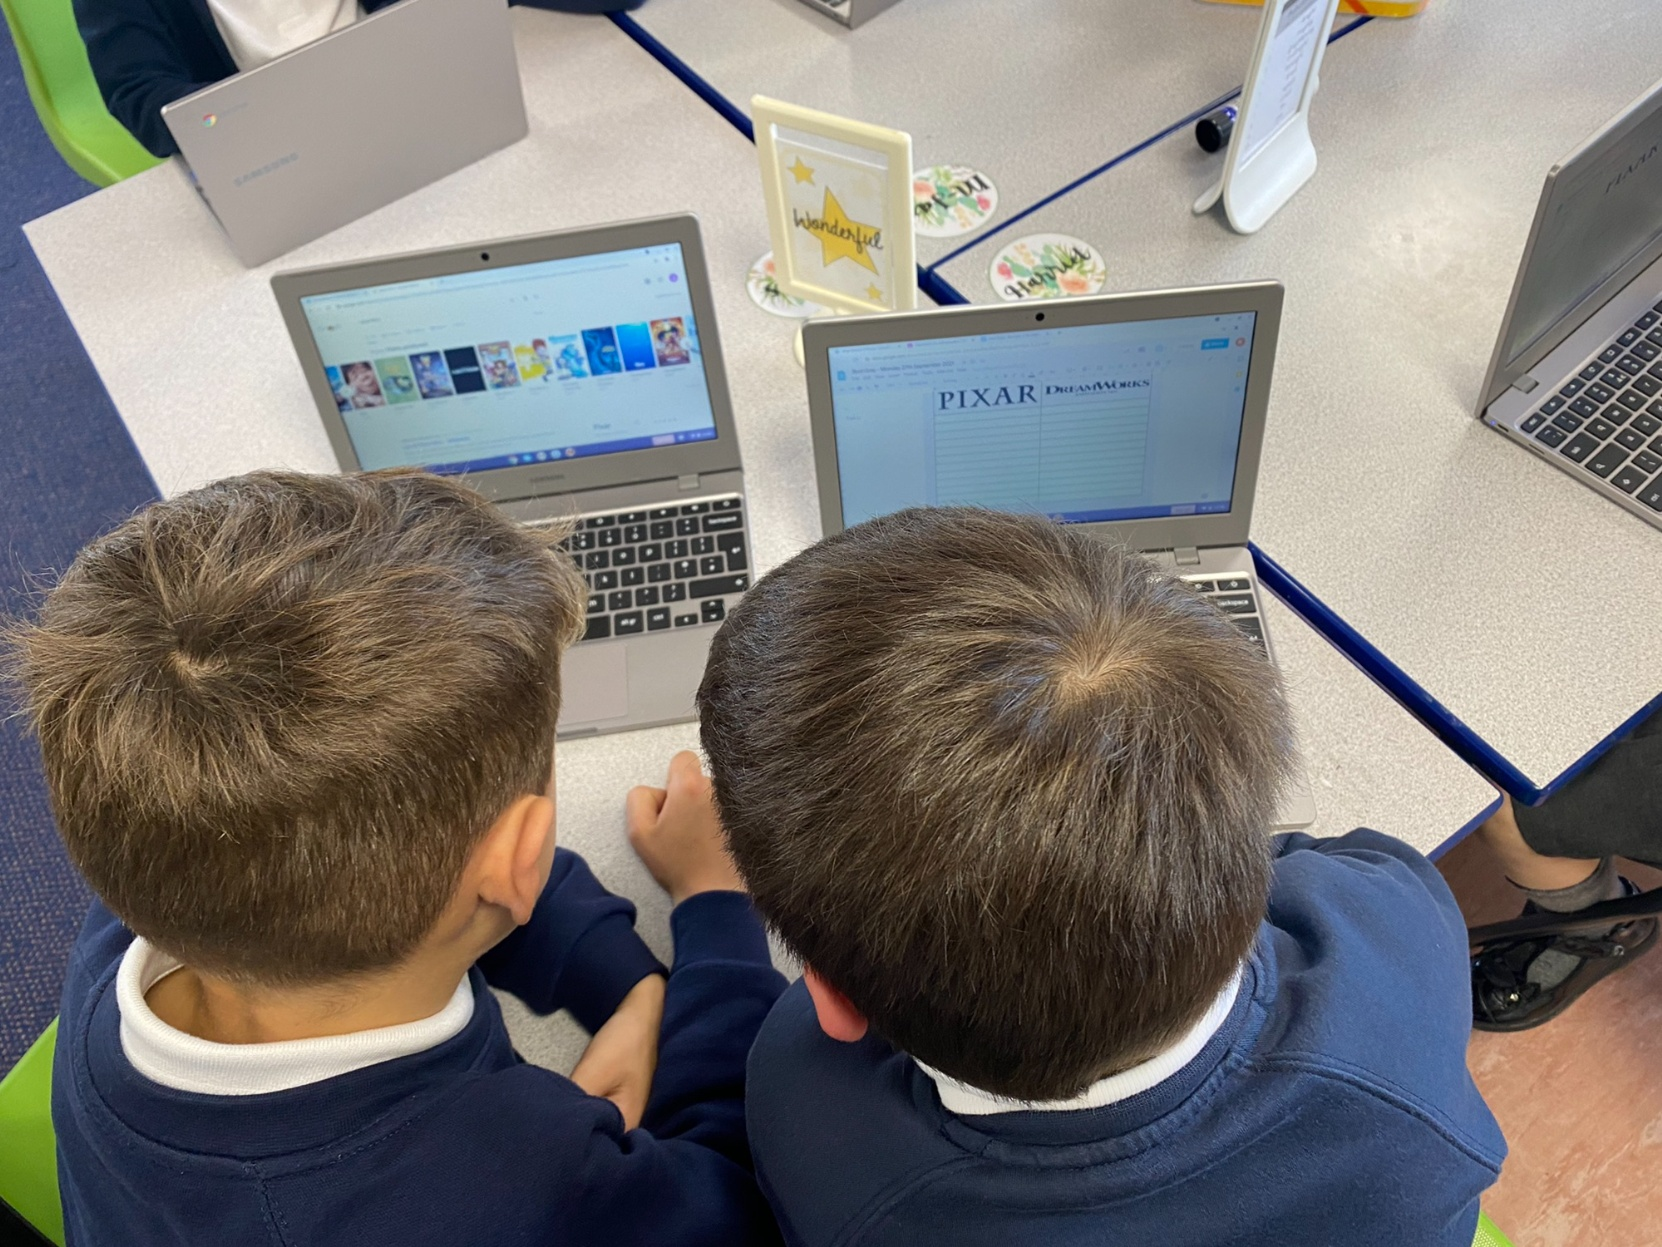 Year 3 children researching about Pixar and Dreamworks